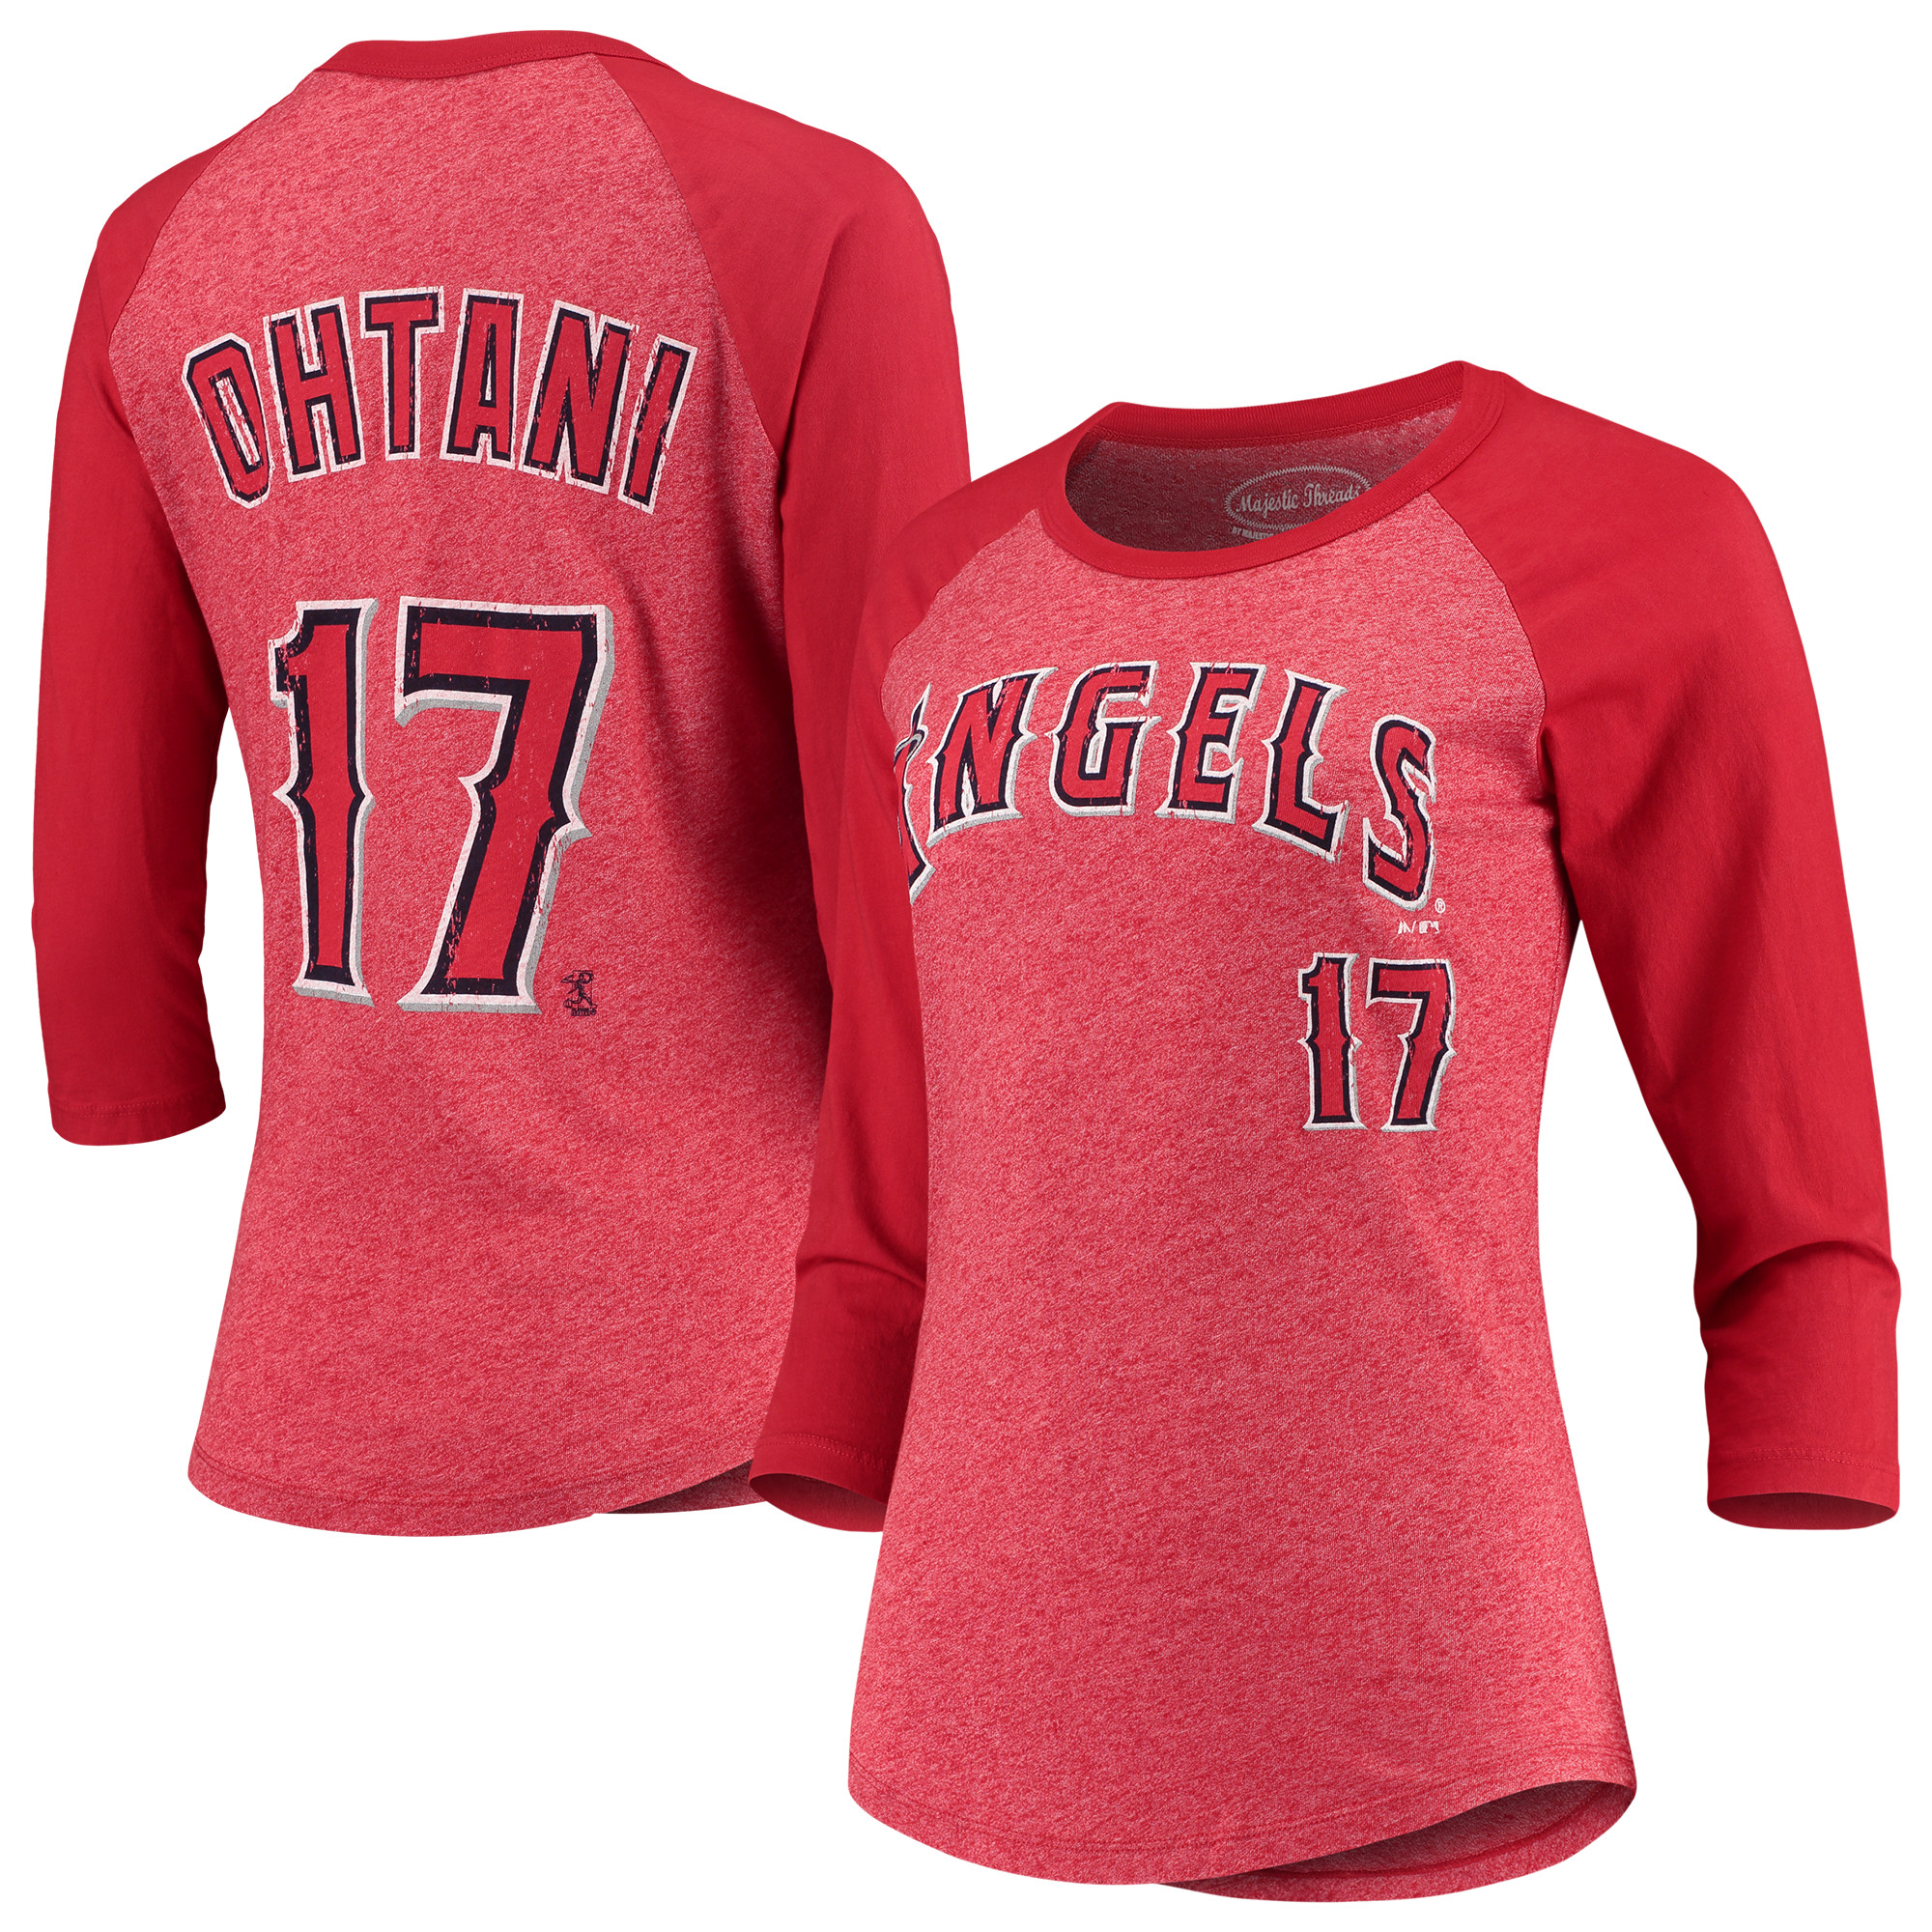 Shohei Ohtani Los Angeles Angels Majestic Threads Women's Name & Number Tri-Blend 3/4-Sleeve Raglan T-Shirt - Red